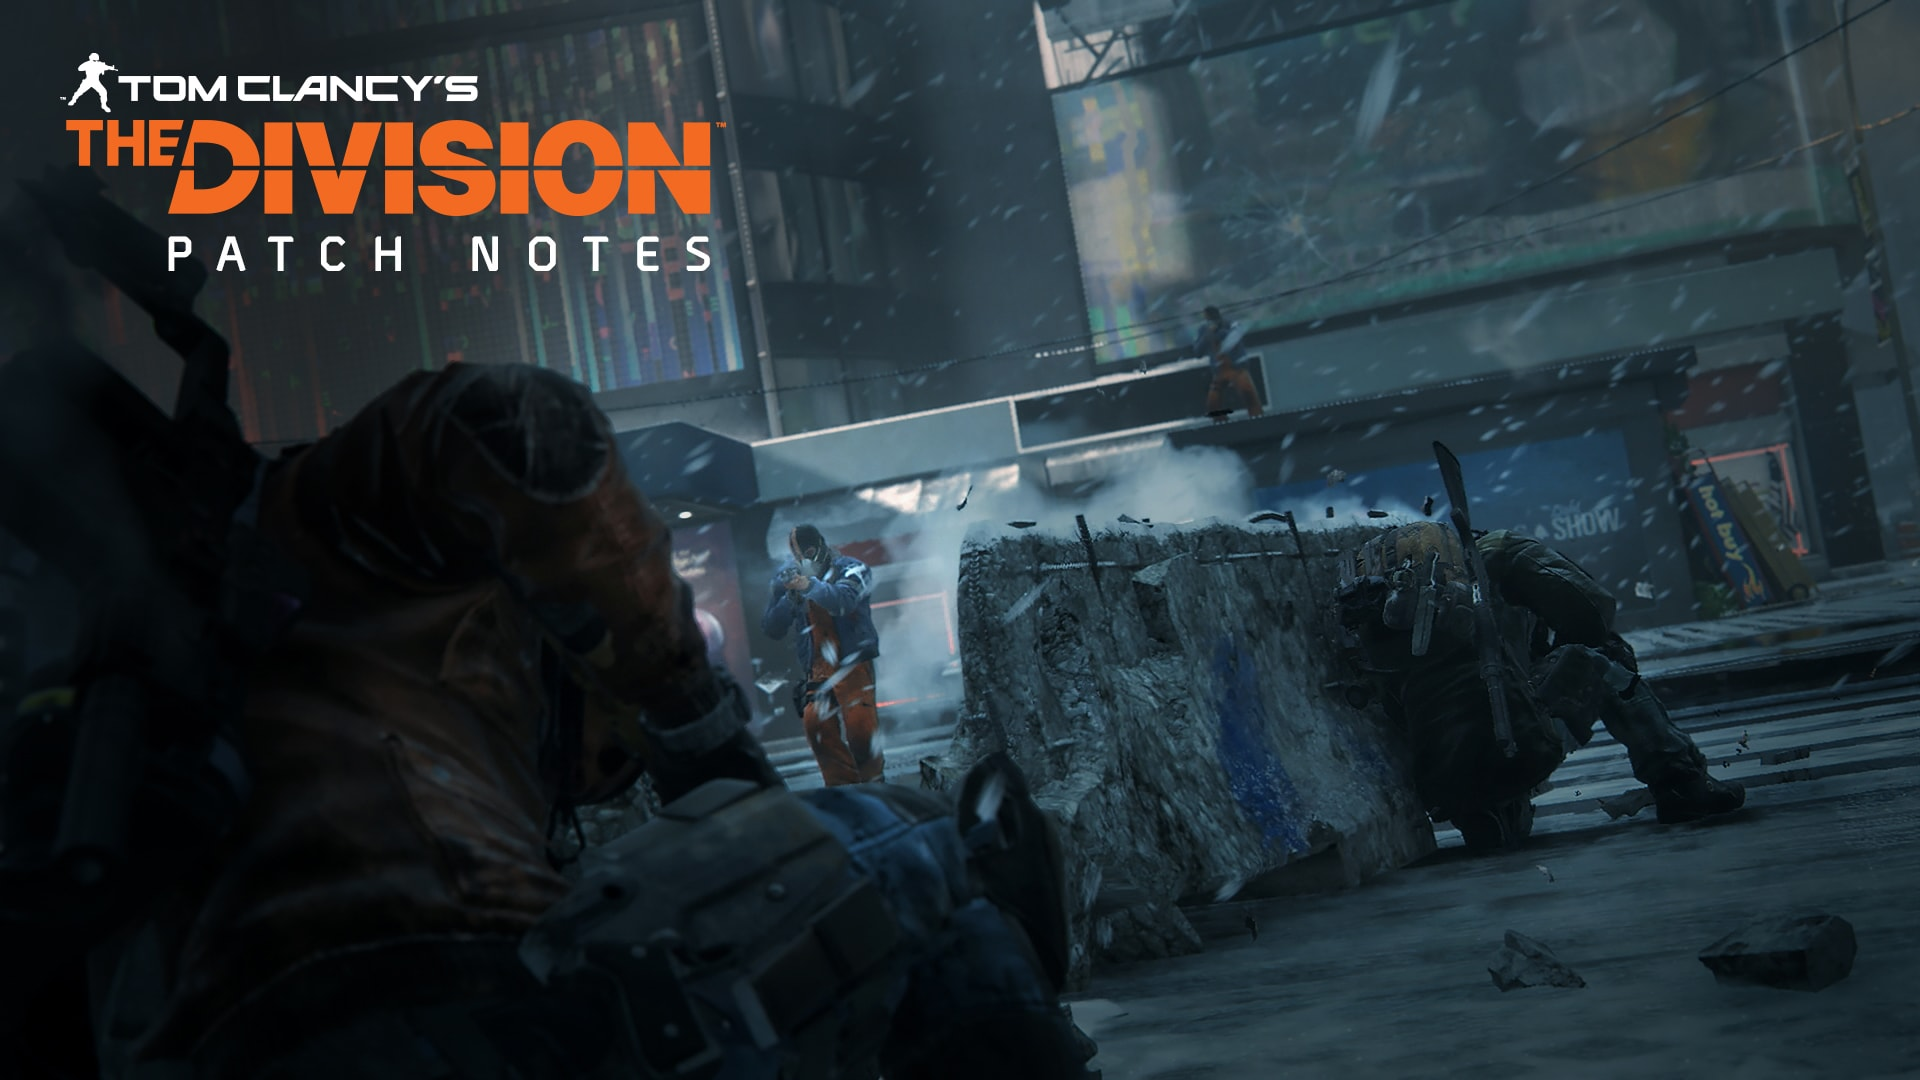 2016-03-04 [News] The Division - Patch Notes